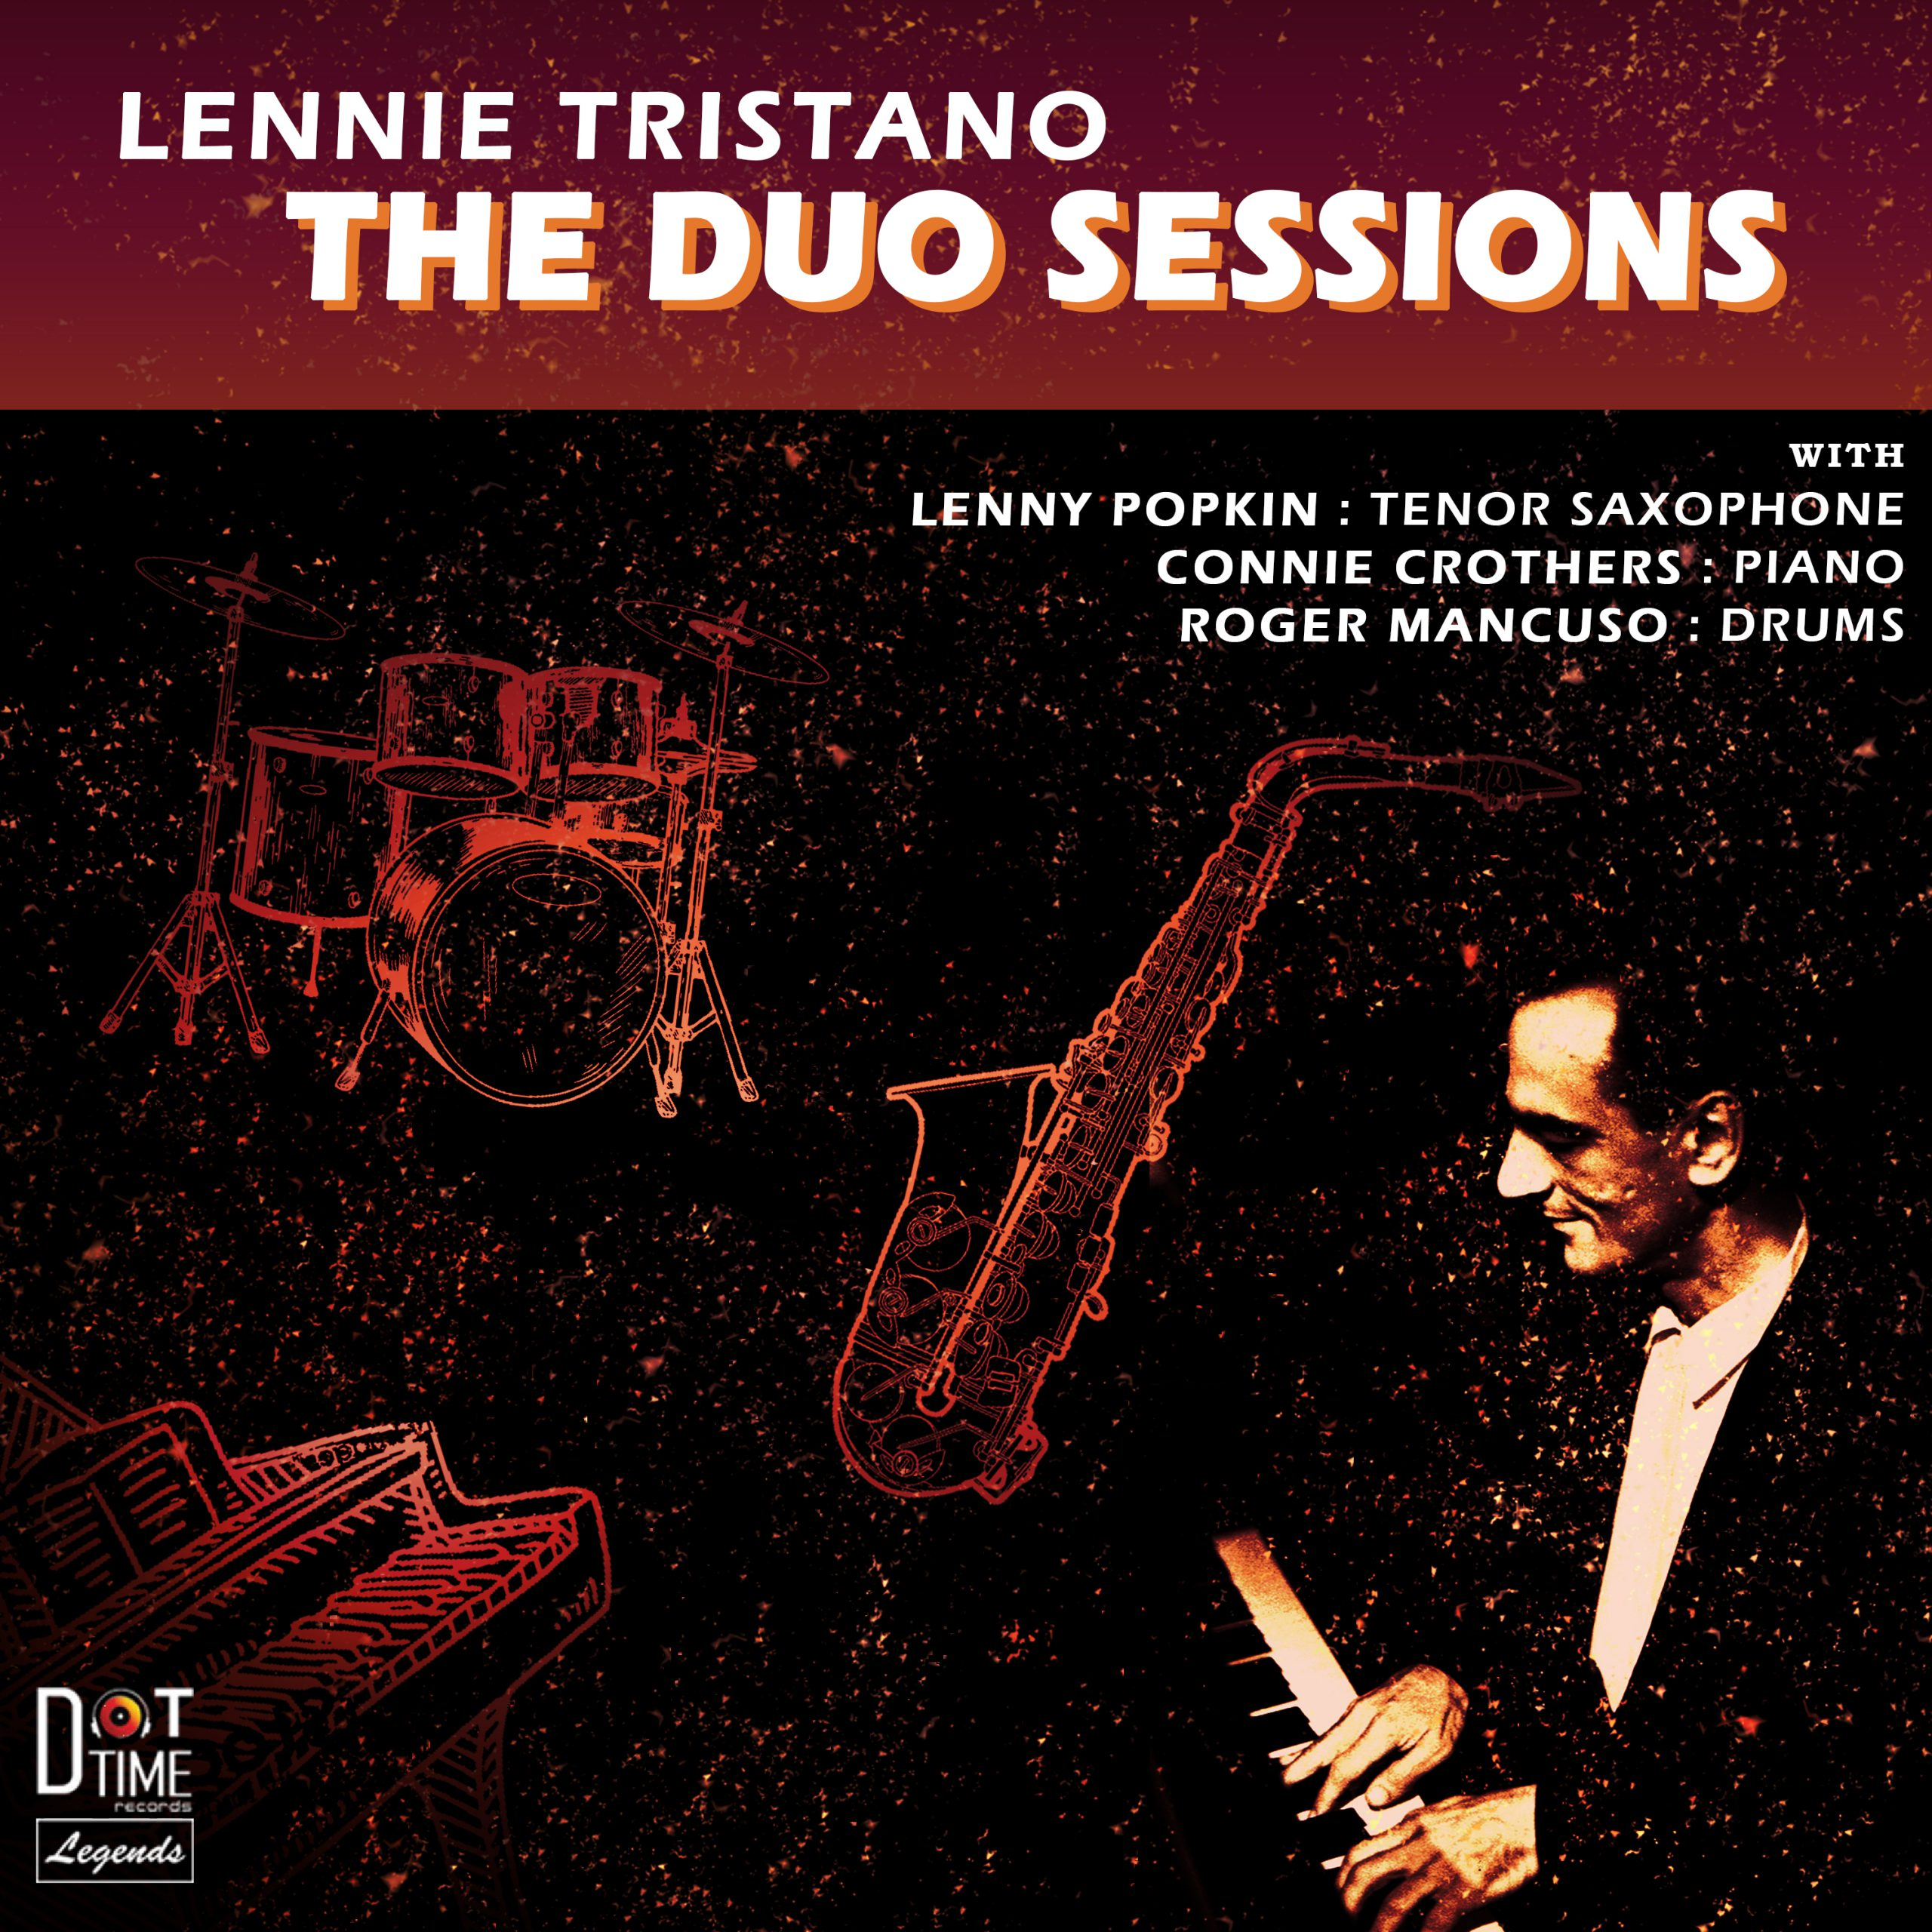 Lennie Tristano: The Duo Sessions – Dot Time Records